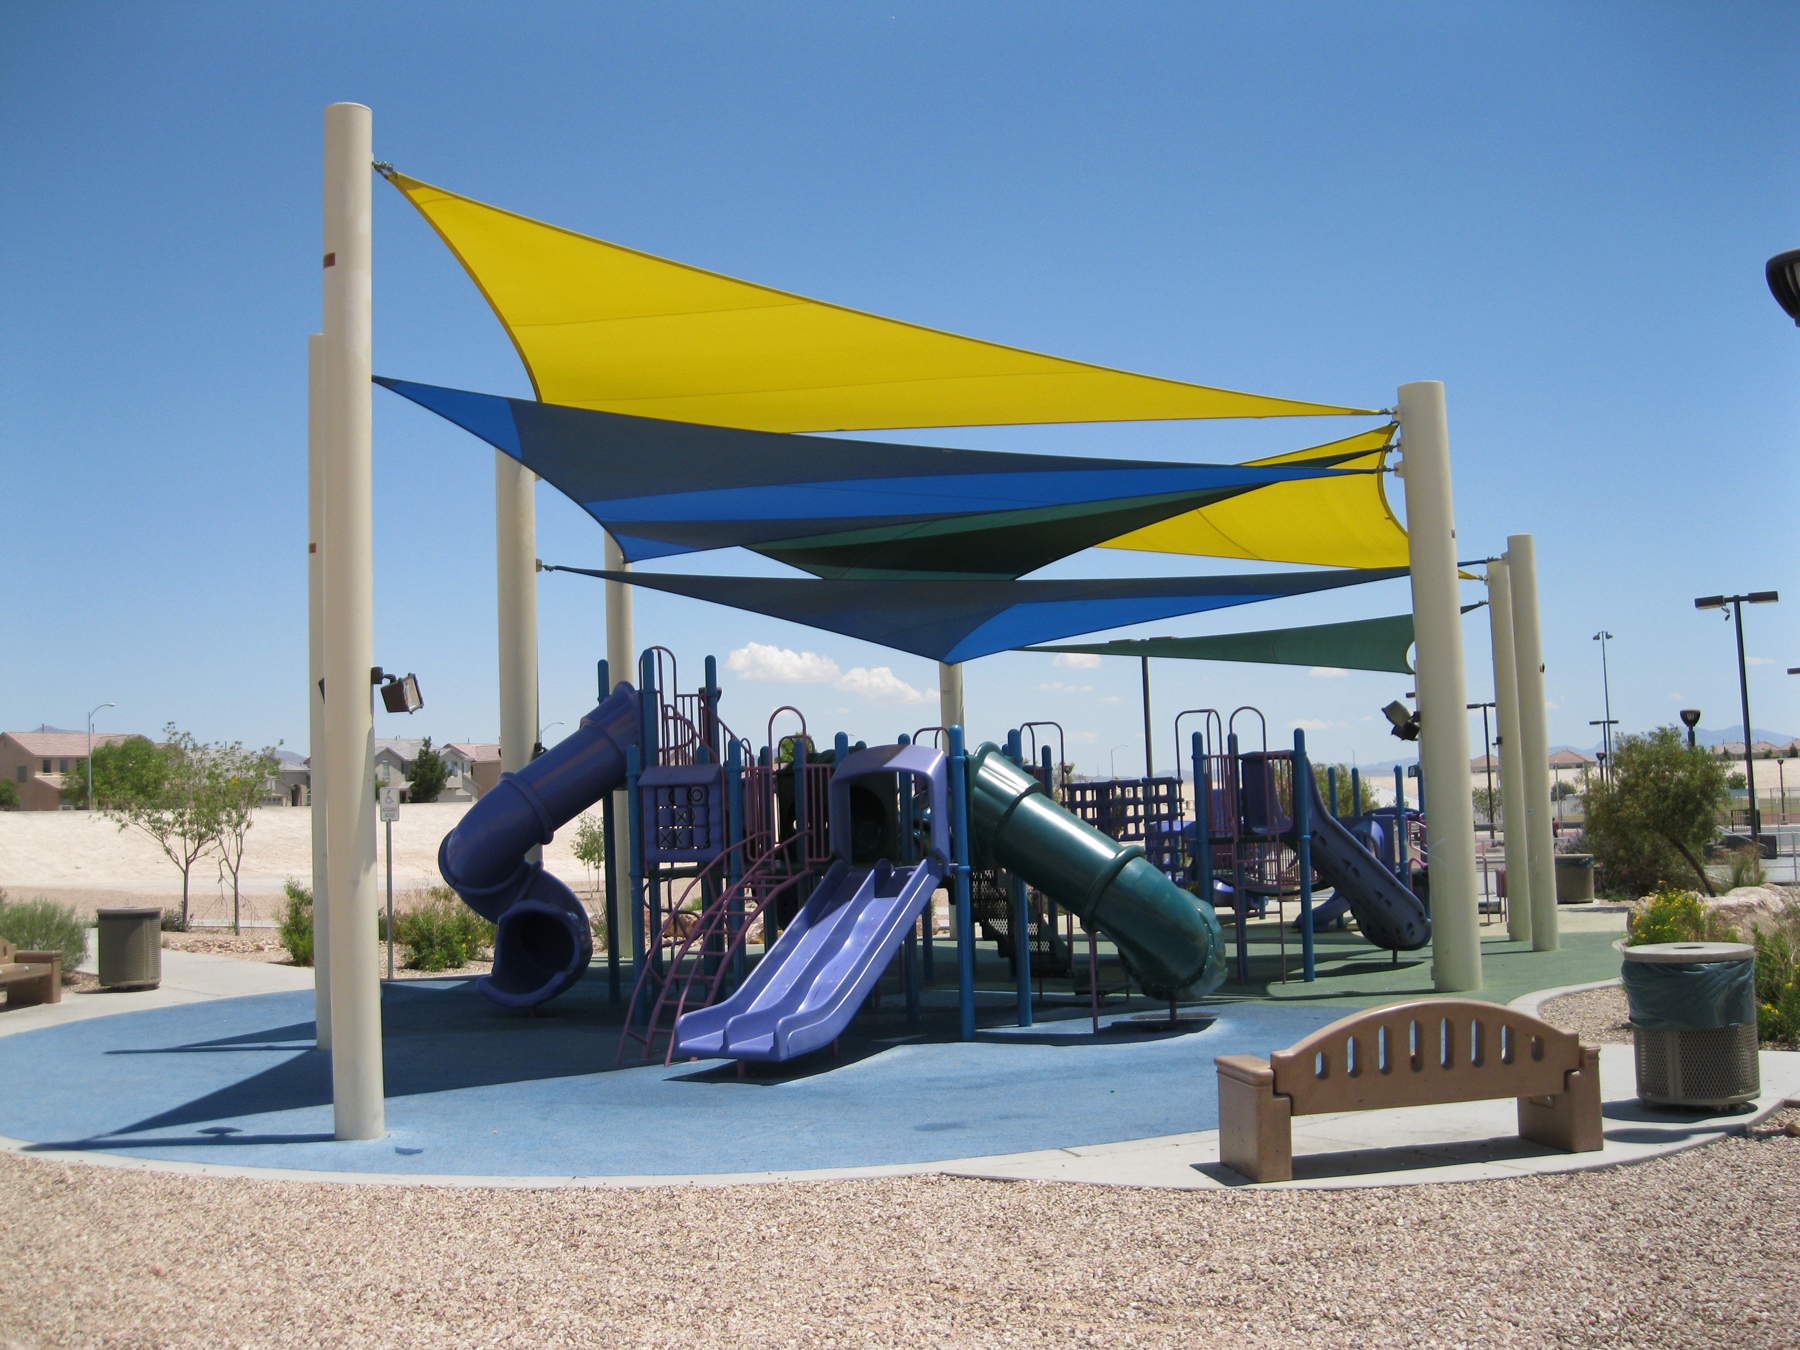 Protect Playground from Sun